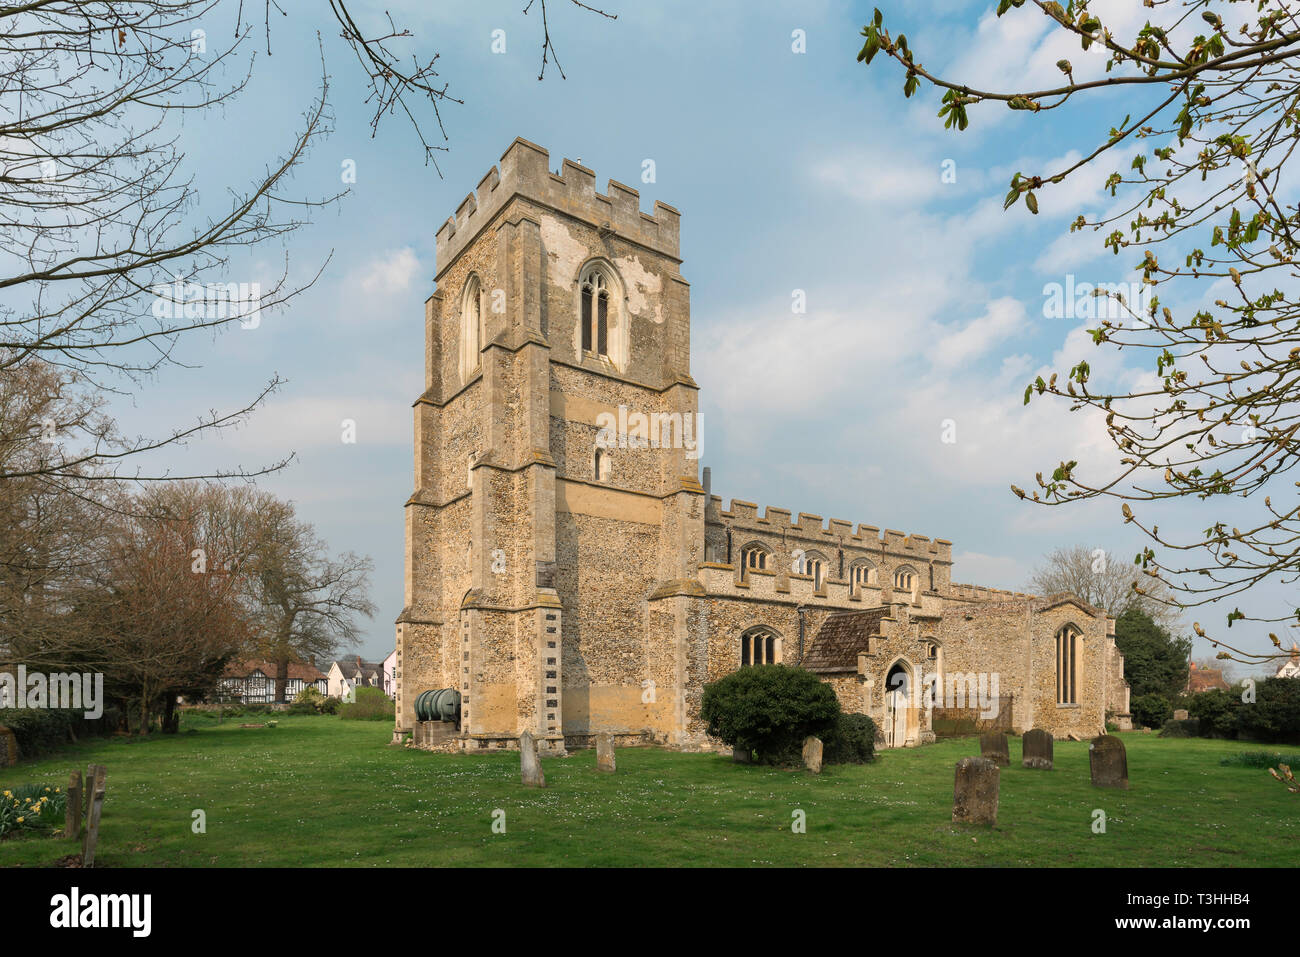 View of St John The Baptist Church - a medieval parish church in the Suffolk village of Stoke by Clare, England, UK. - Stock Image